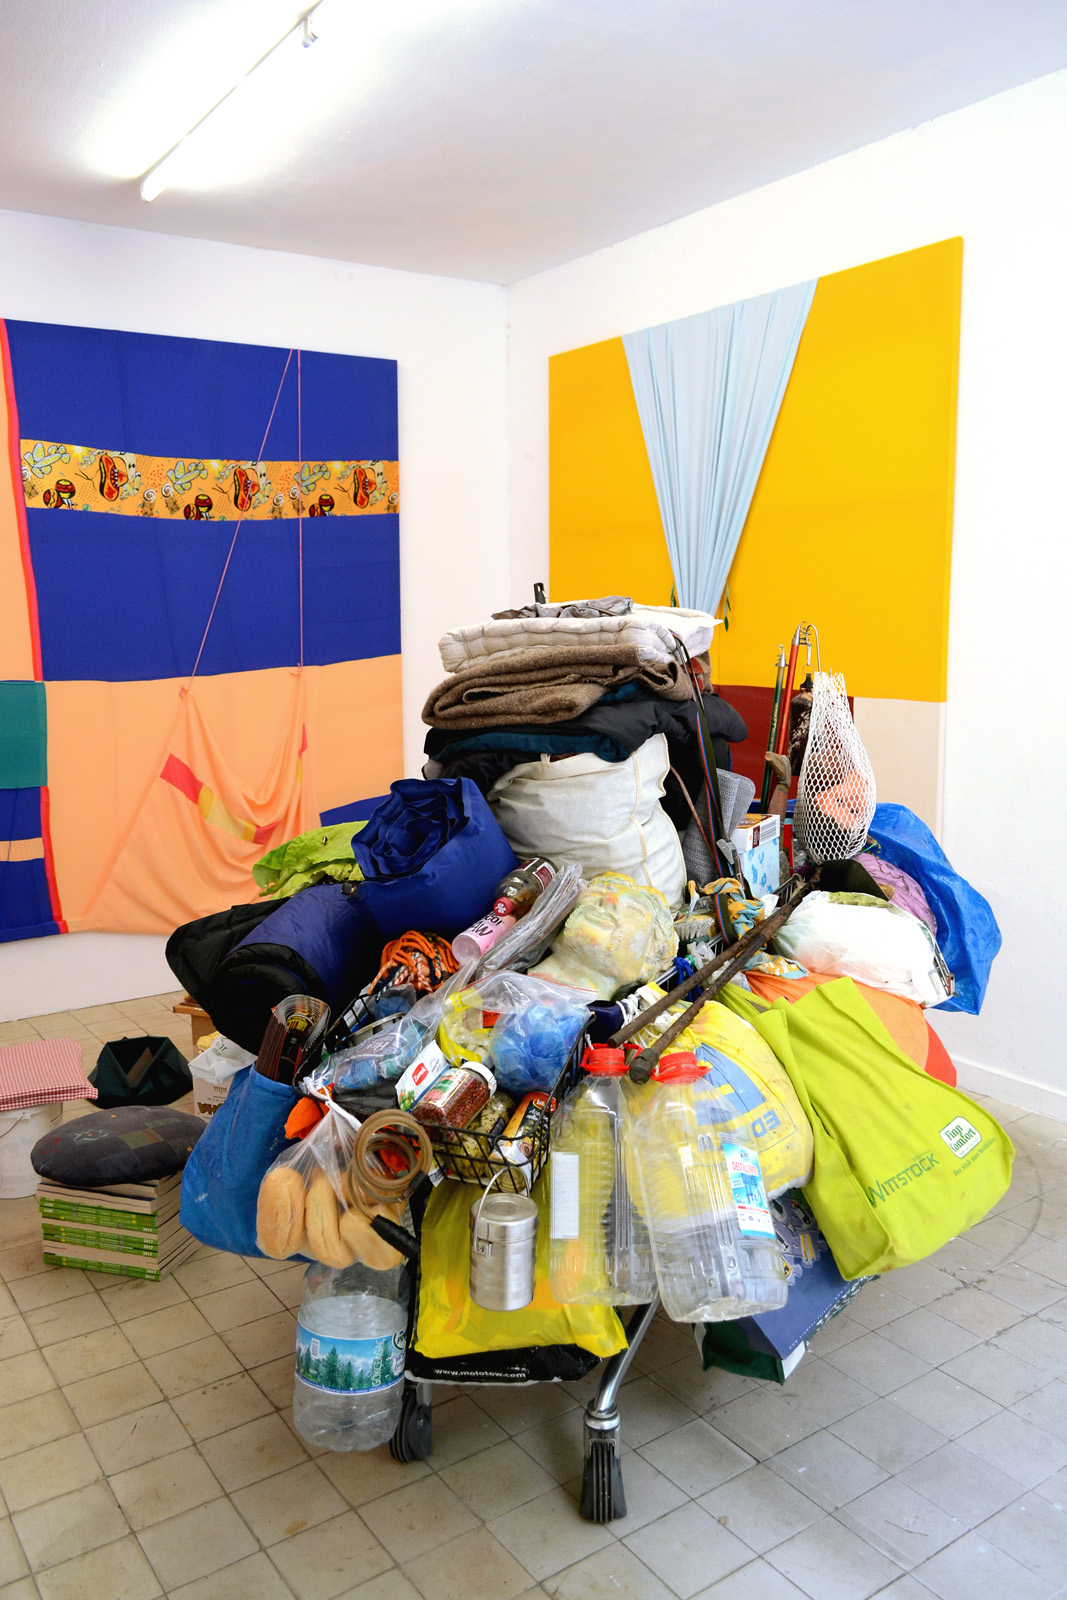 Michel Aniol & Meike Kuhnert In Medias Res stay hungry project space Berlin